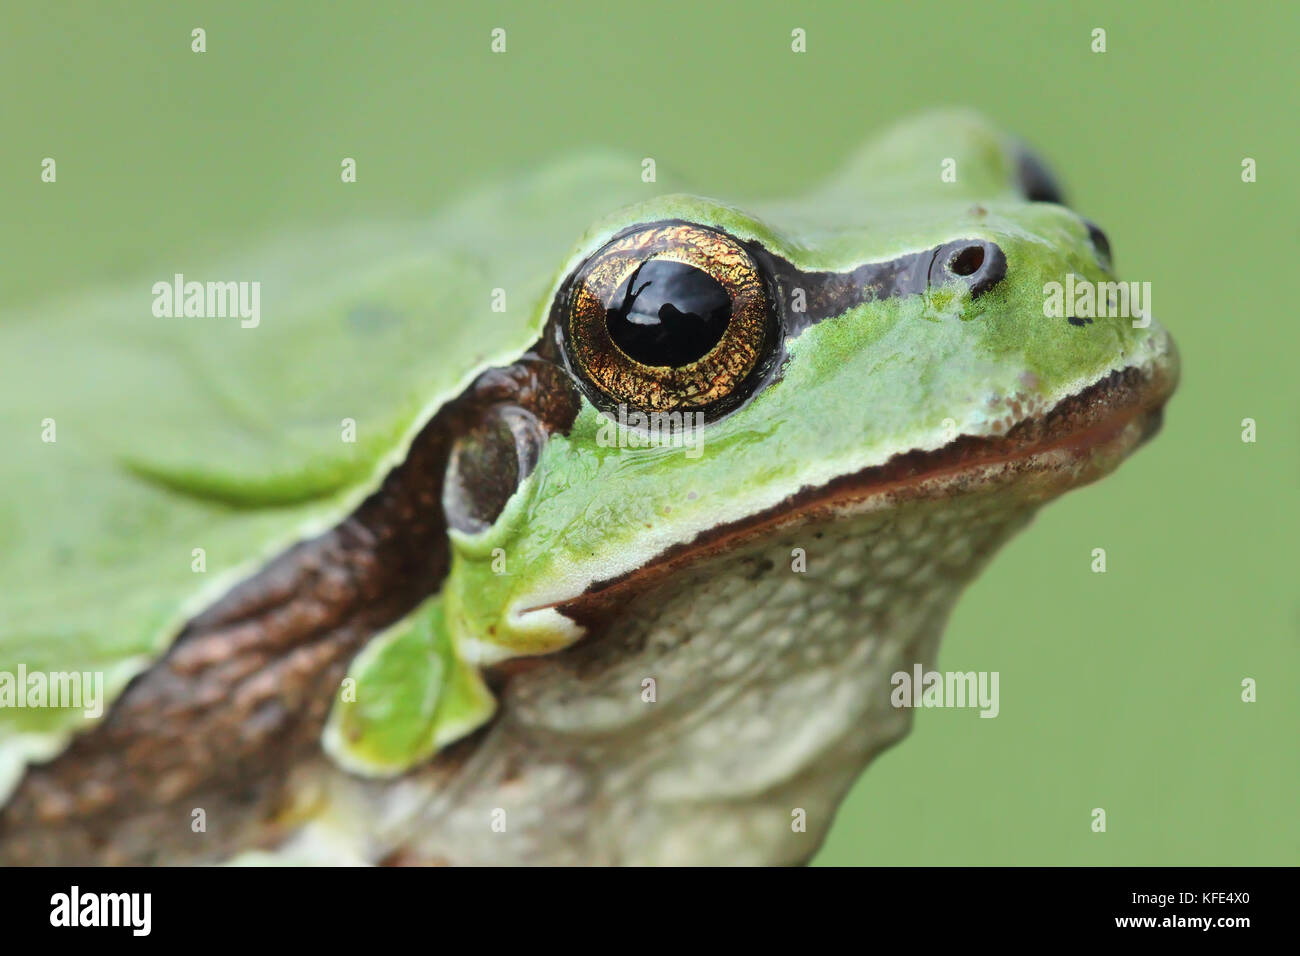 European tree frog (Hyla arborea) head Stock Photo